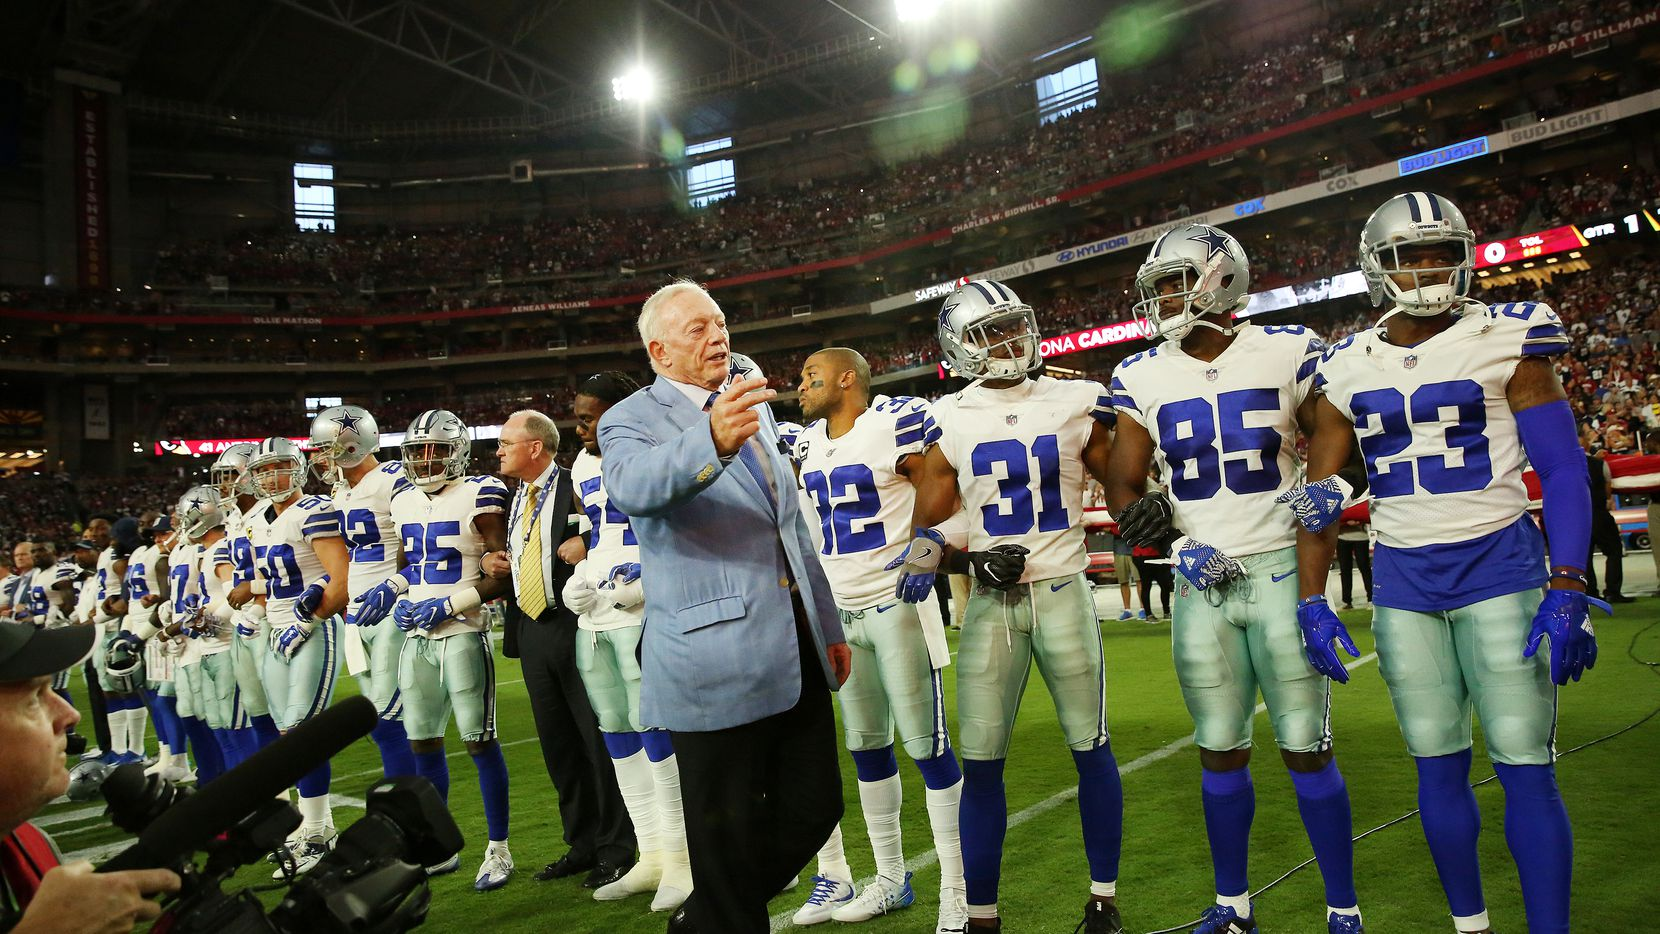 Dallas Cowboys owner Jerry Jones ushered photographers back to their position as stadium personnel tried to remove the media before the Cowboys took a knee before the playing of the United States National Anthem before a National Football League game between the Dallas Cowboys and the Arizona Cardinals at University of Phoenix Stadium in Glendale, Arizona on Monday September 25, 2017.